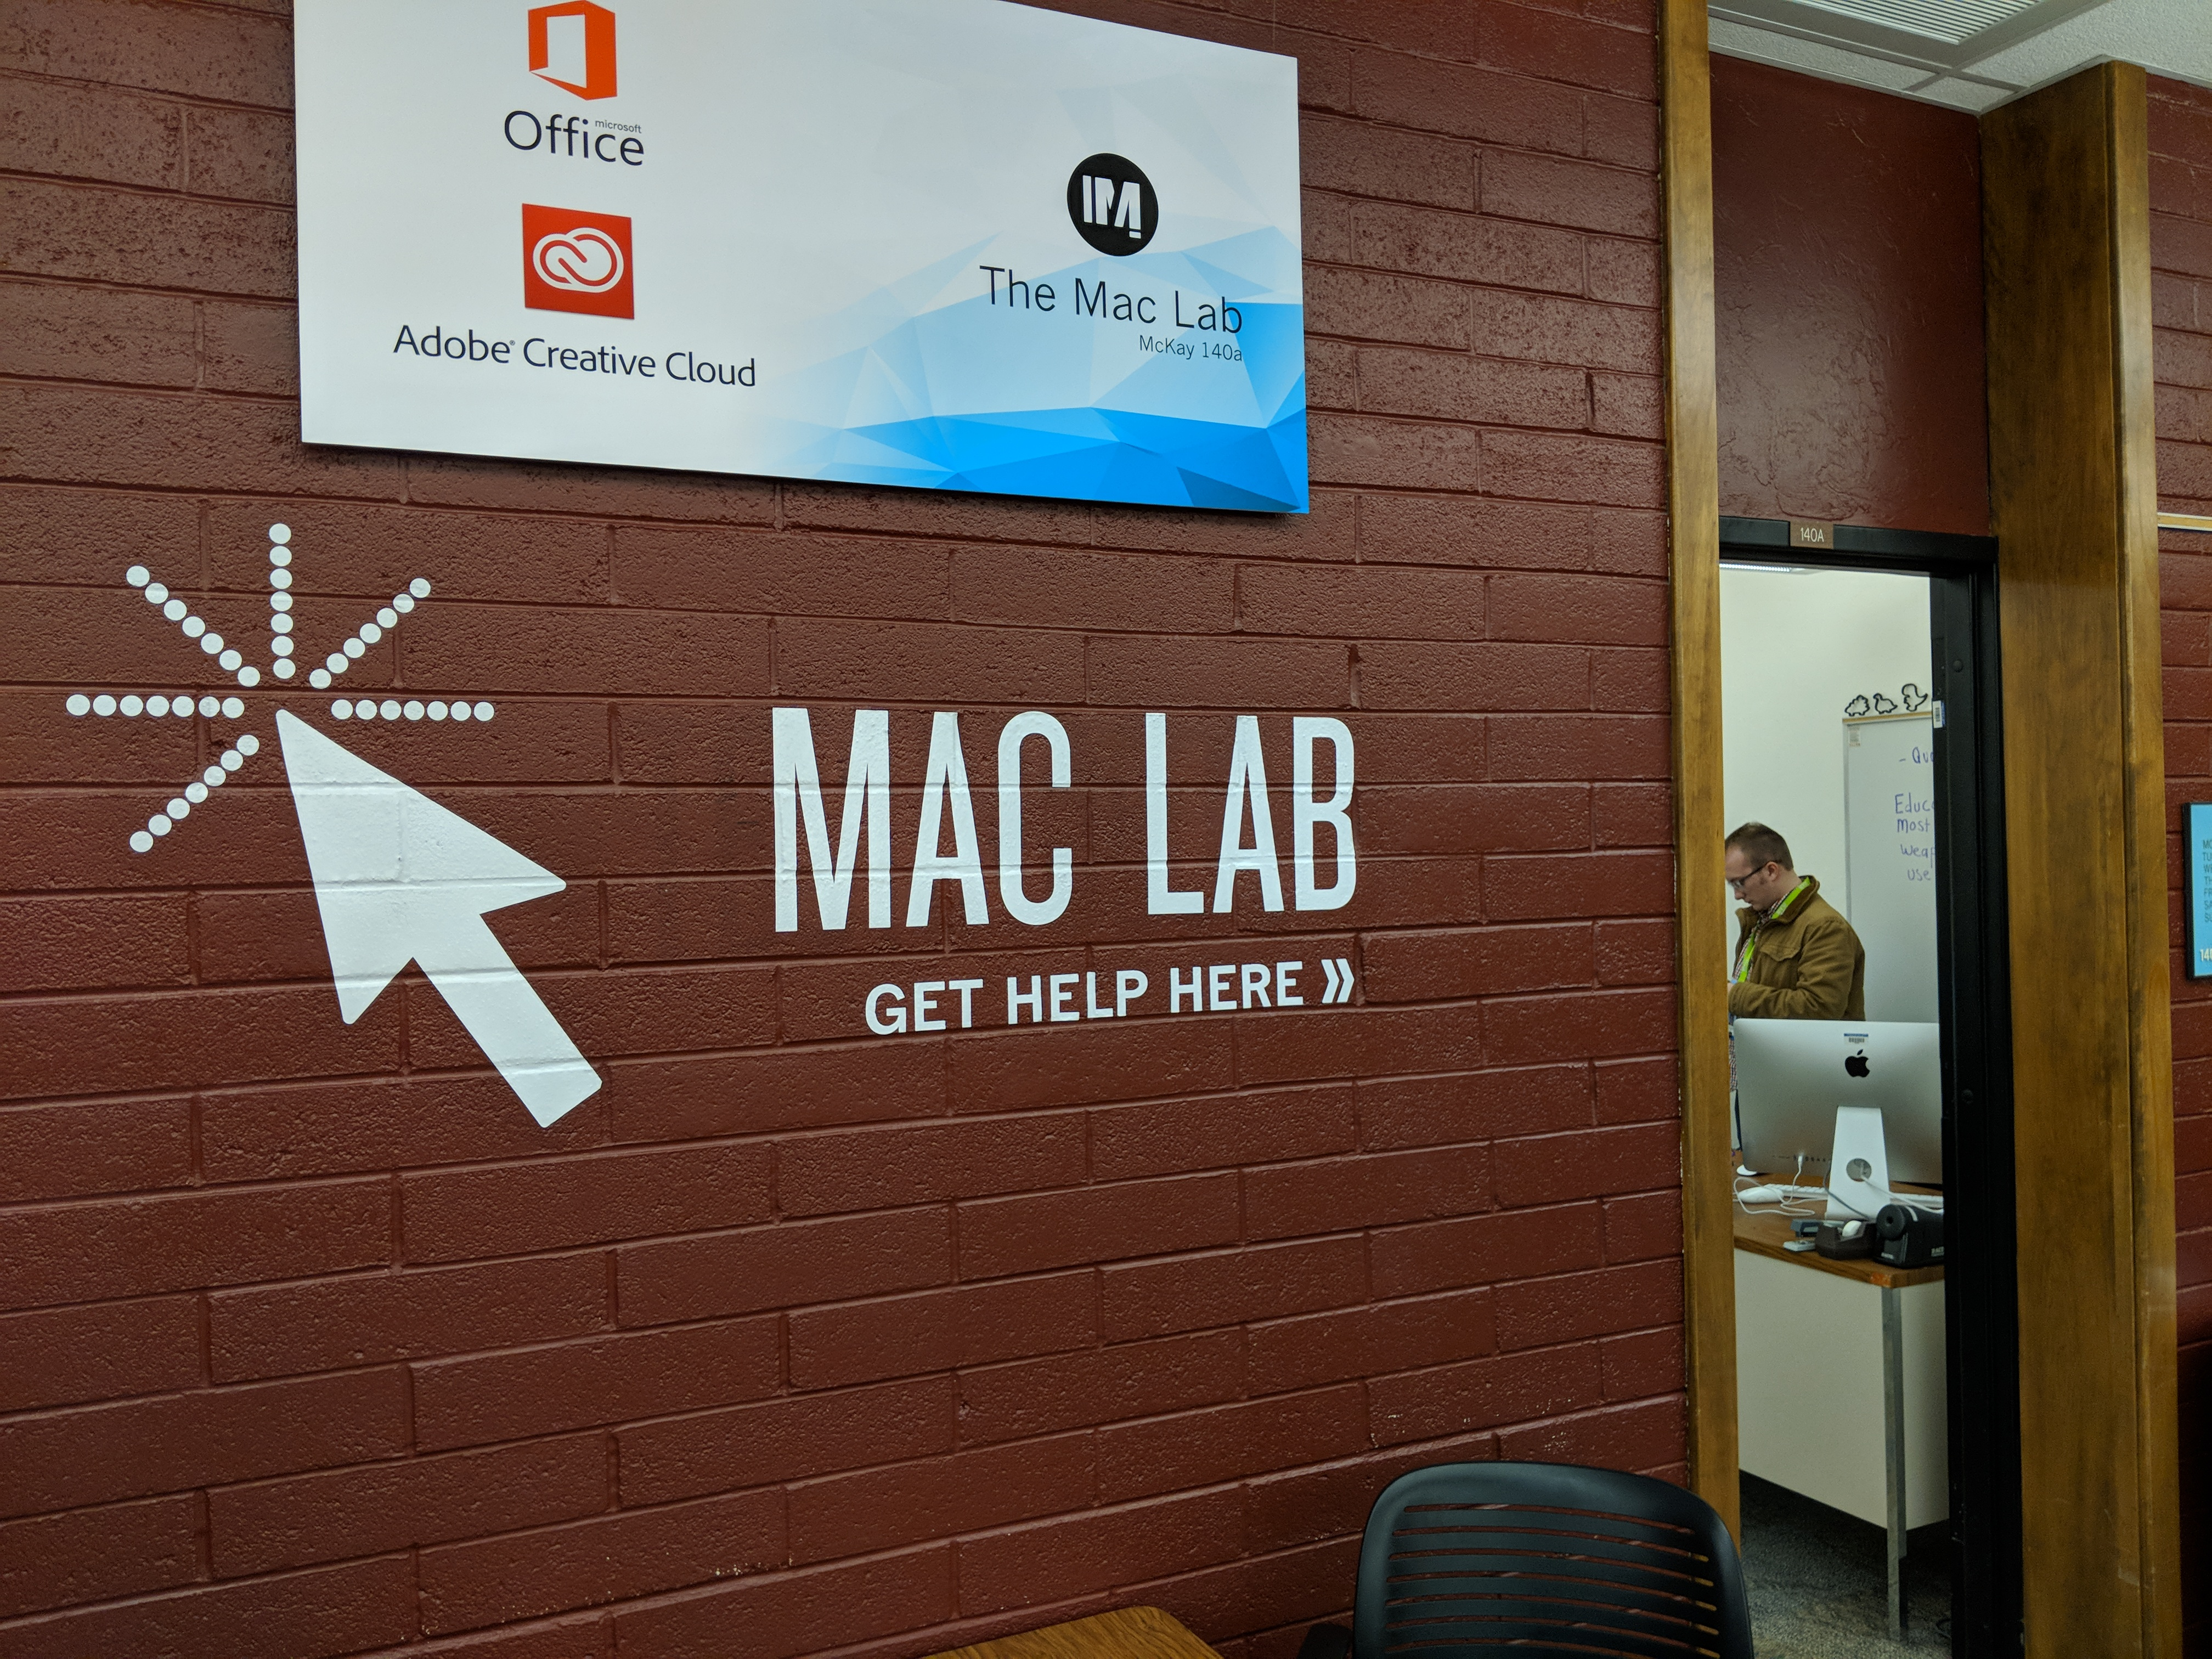 Students at BYU-Idaho have the opportunity to attend an Adobe Suite Workshop taught by Mac Lab employees, to learn the main Adobe programs on Jan. 25.